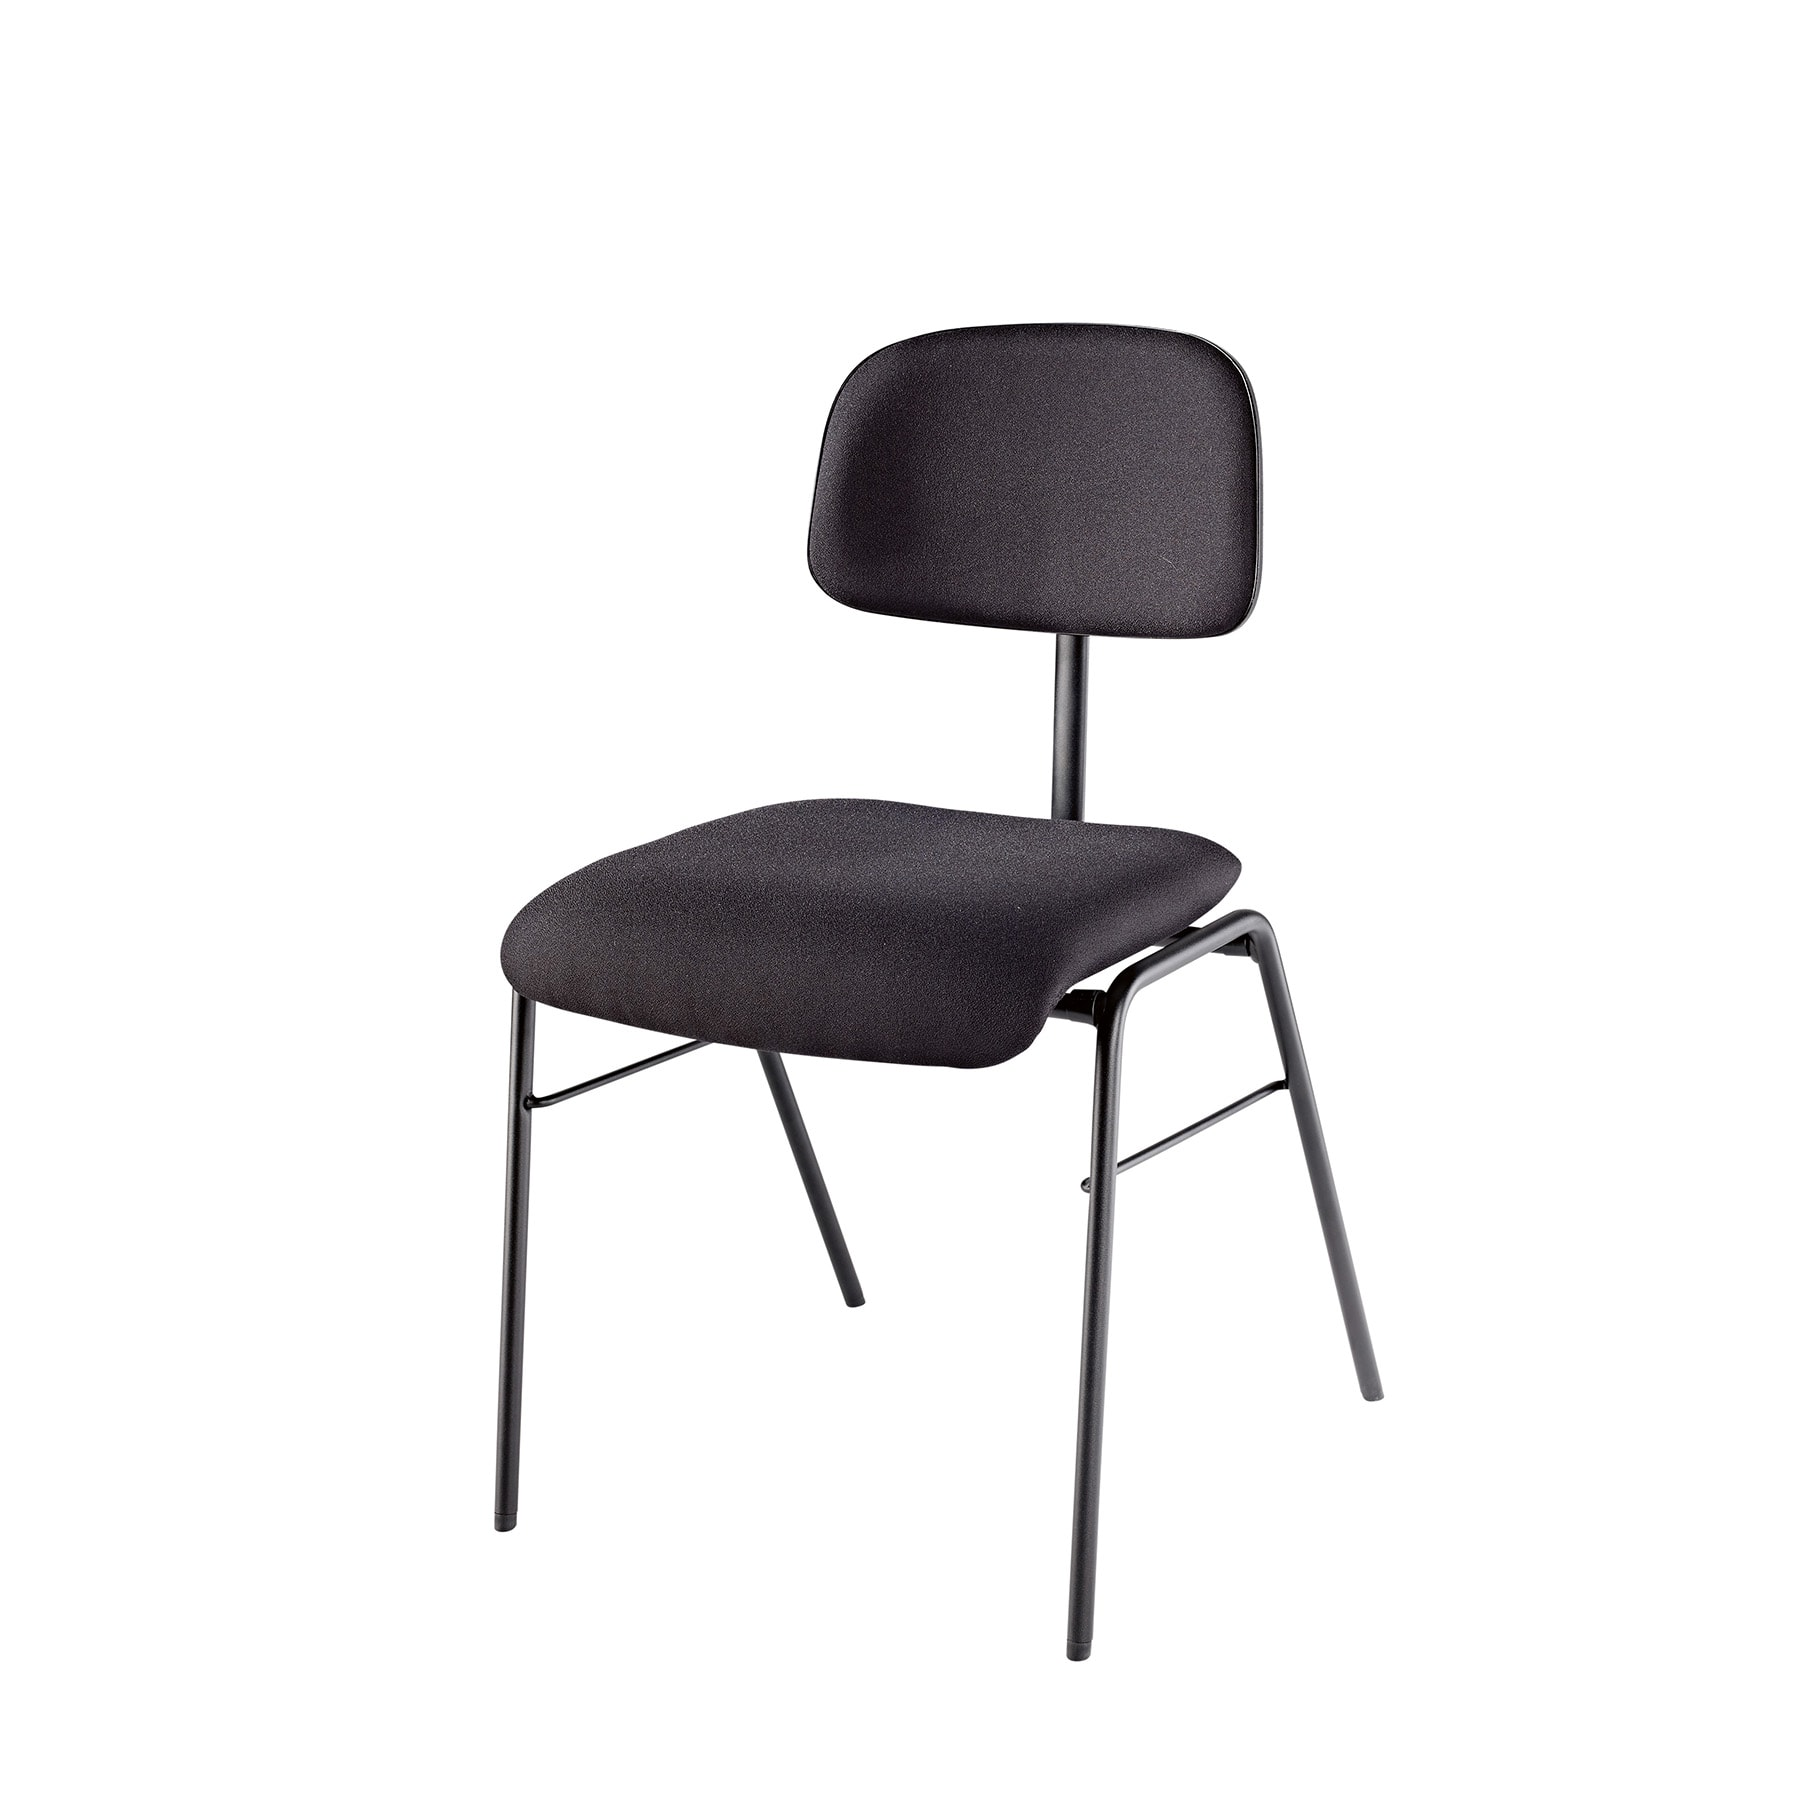 KM13430 - Orchestra chair